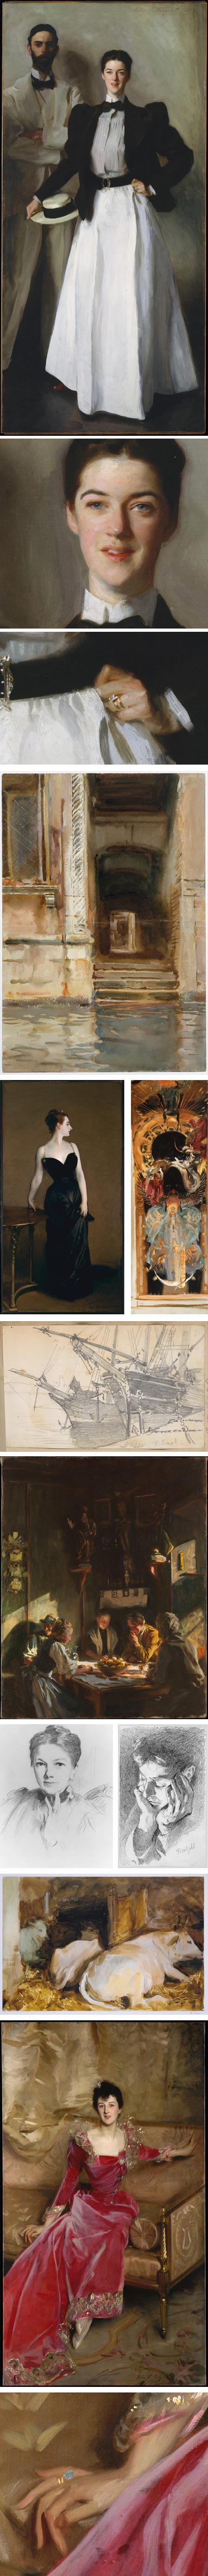 John Singer Sargent on Met Museum website